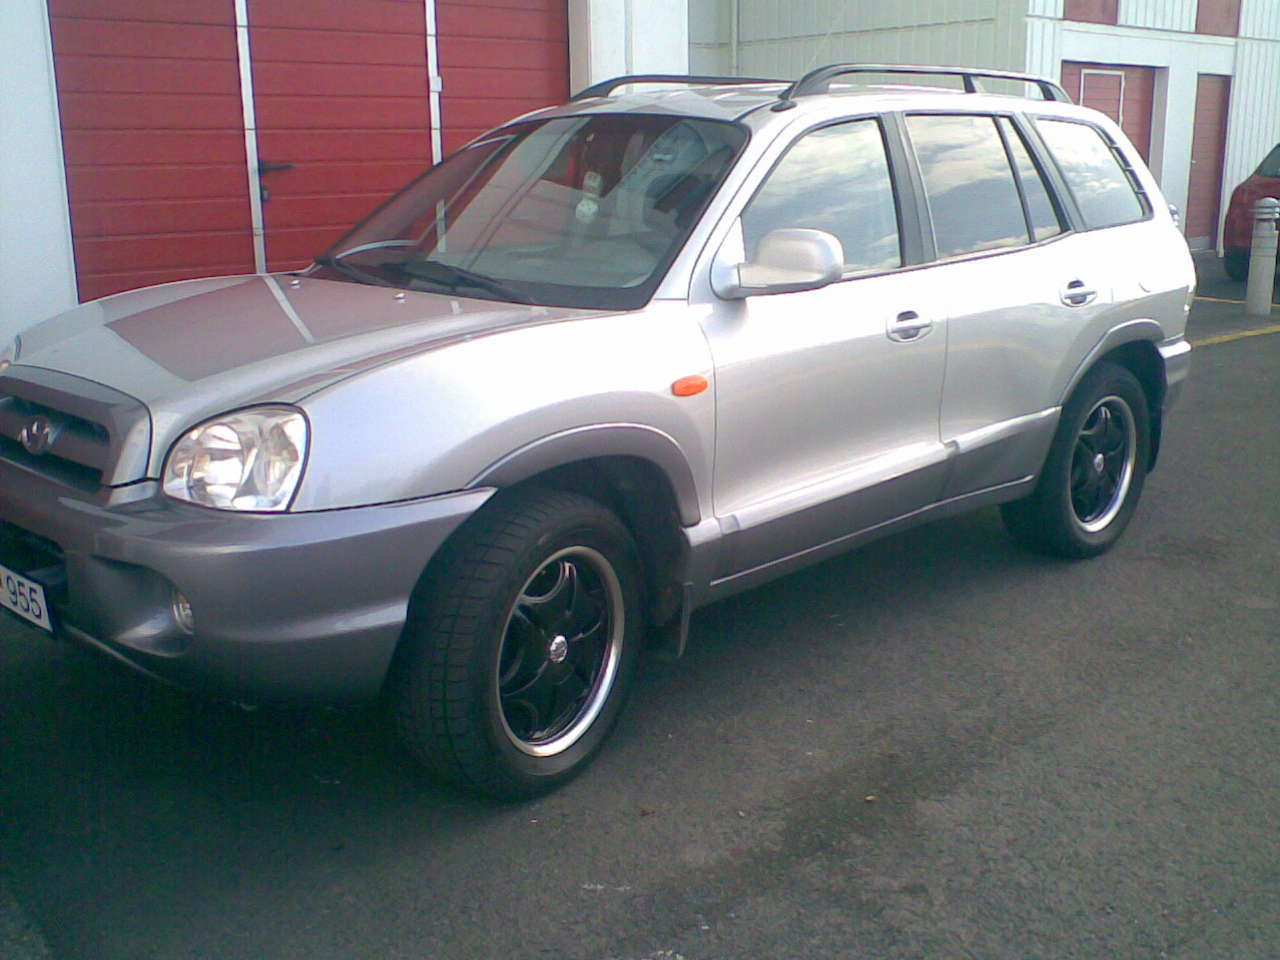 bippidaice 2004 hyundai santa fe specs photos modification info at cardomain. Black Bedroom Furniture Sets. Home Design Ideas